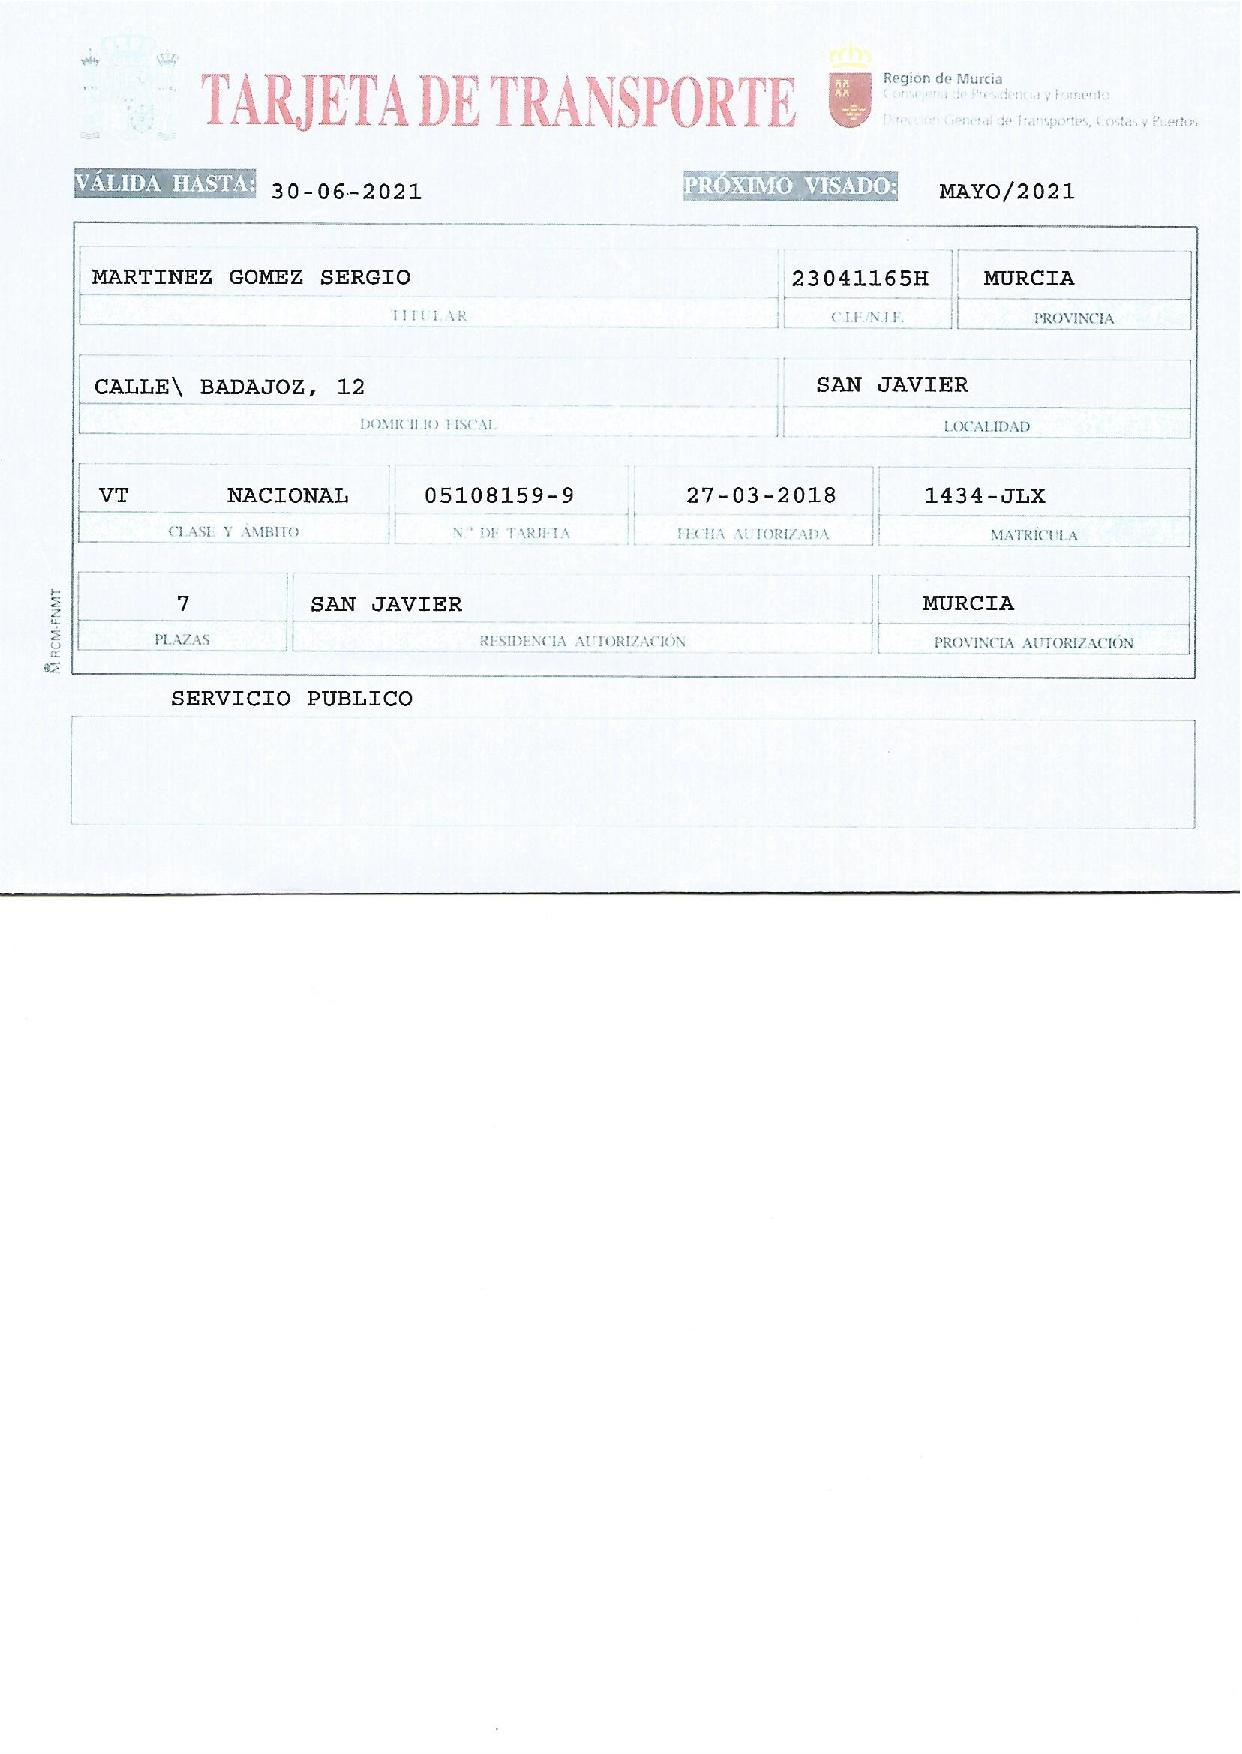 Murcia-San Javier Taxi transport licence